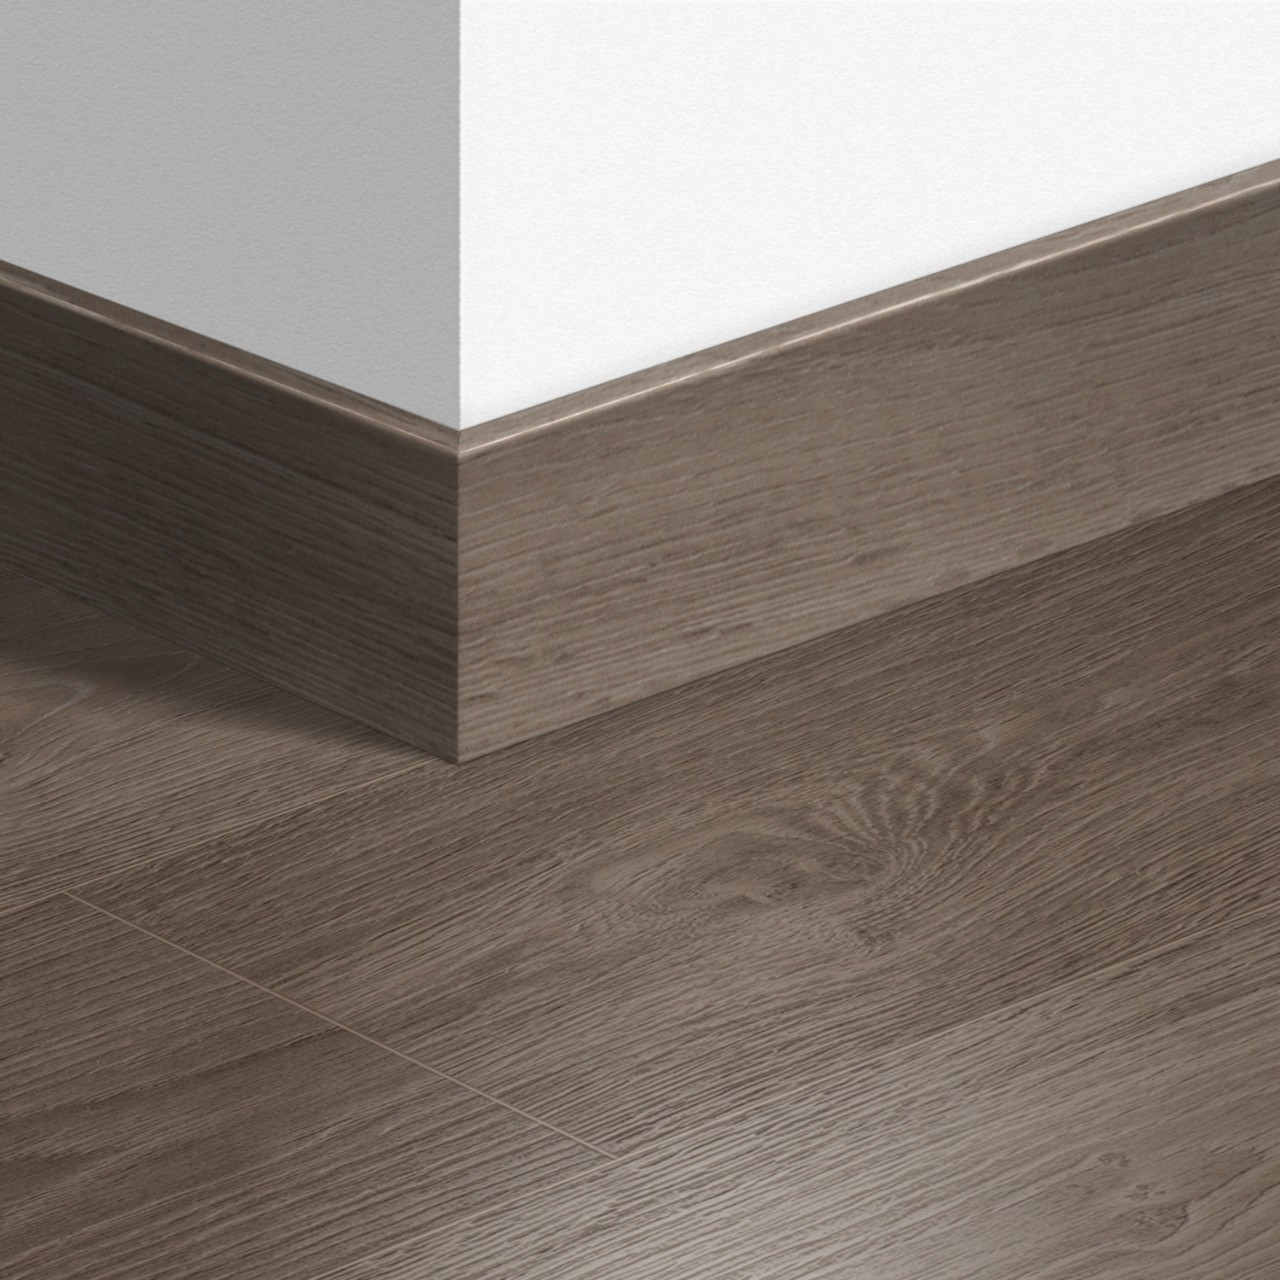 QSLPSKR Laminate Accessories Grey vintage oak QSLPSKR01286